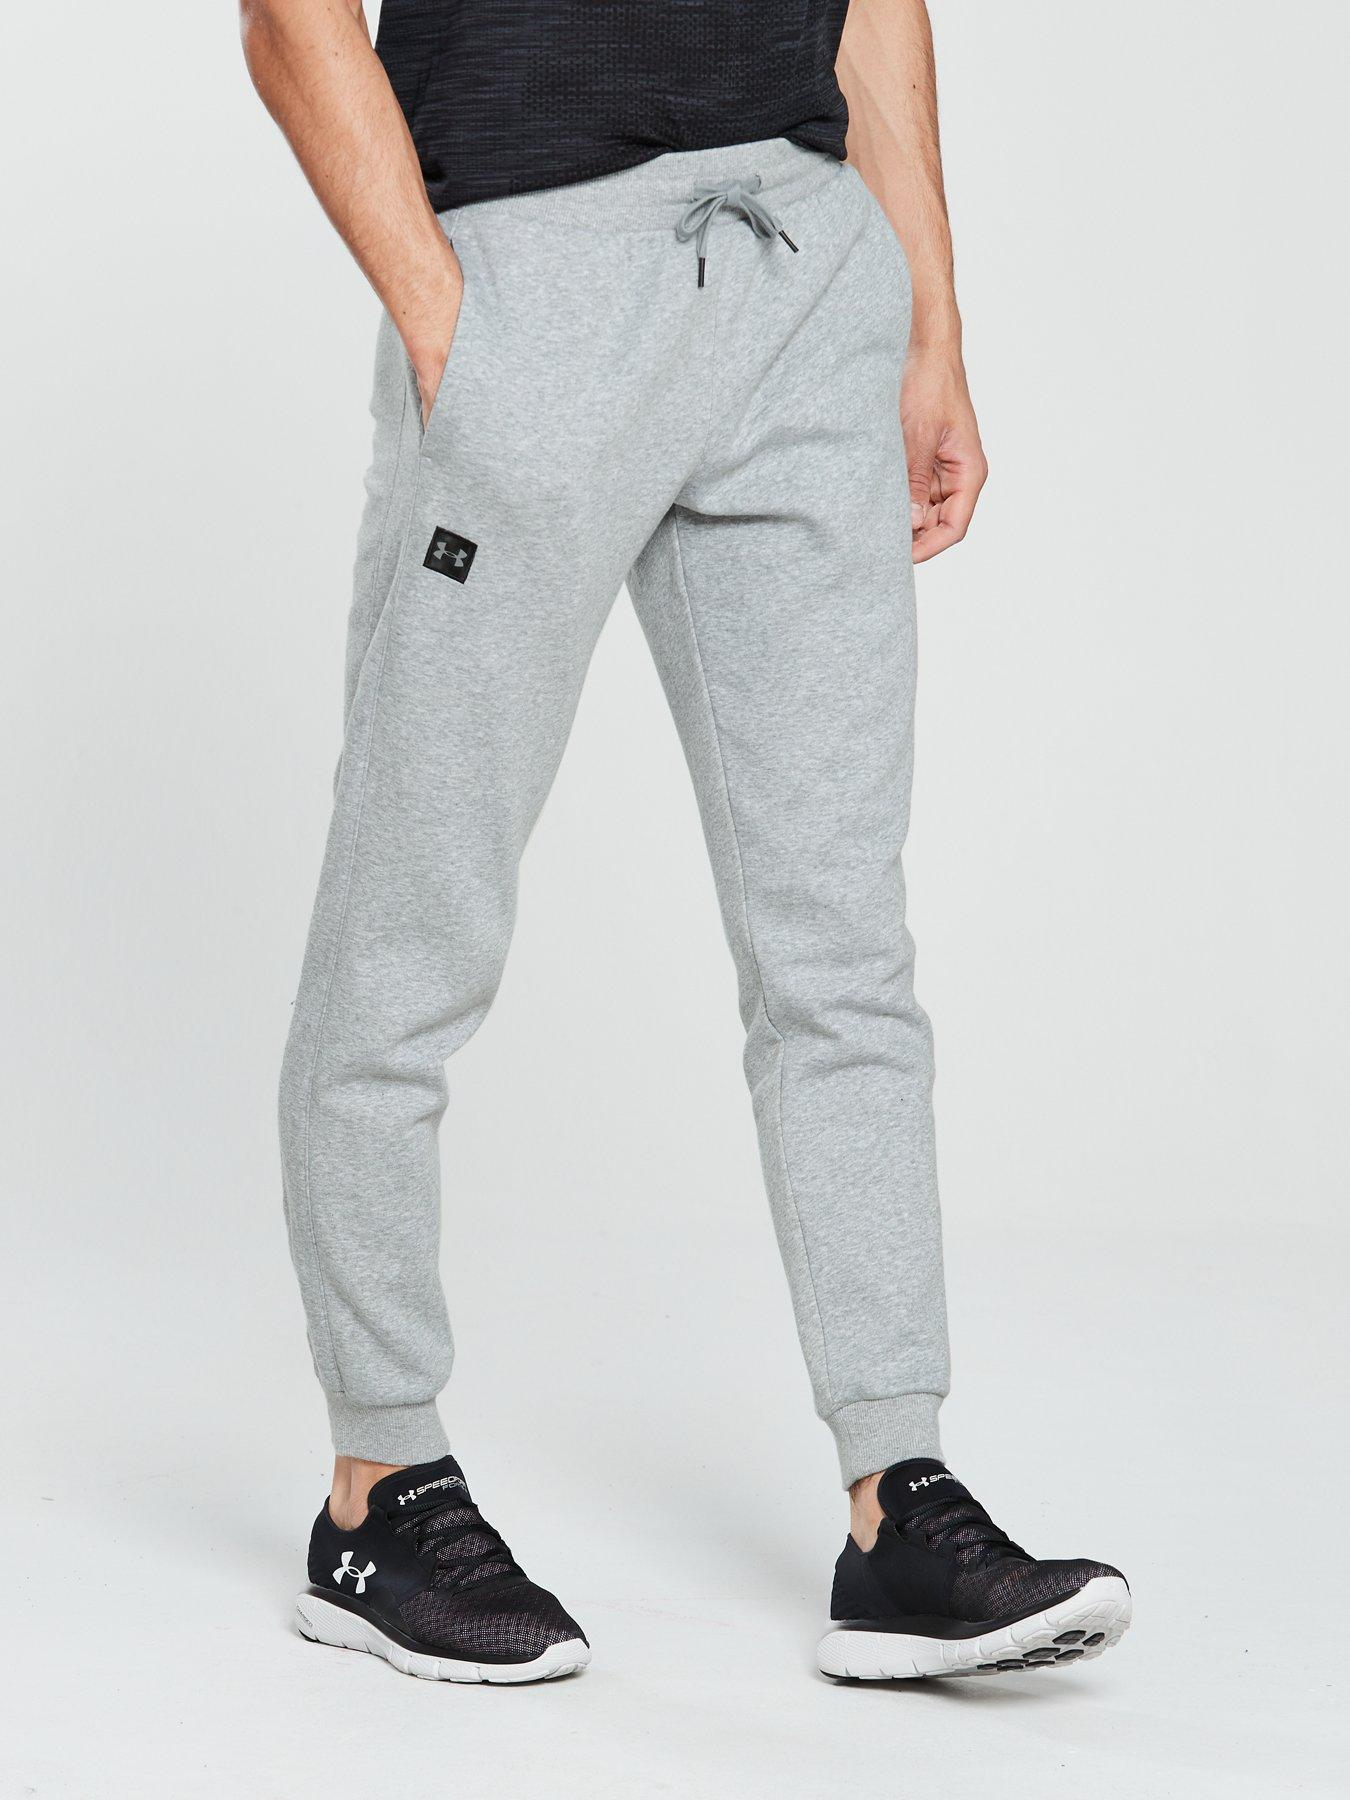 grey under armour joggers